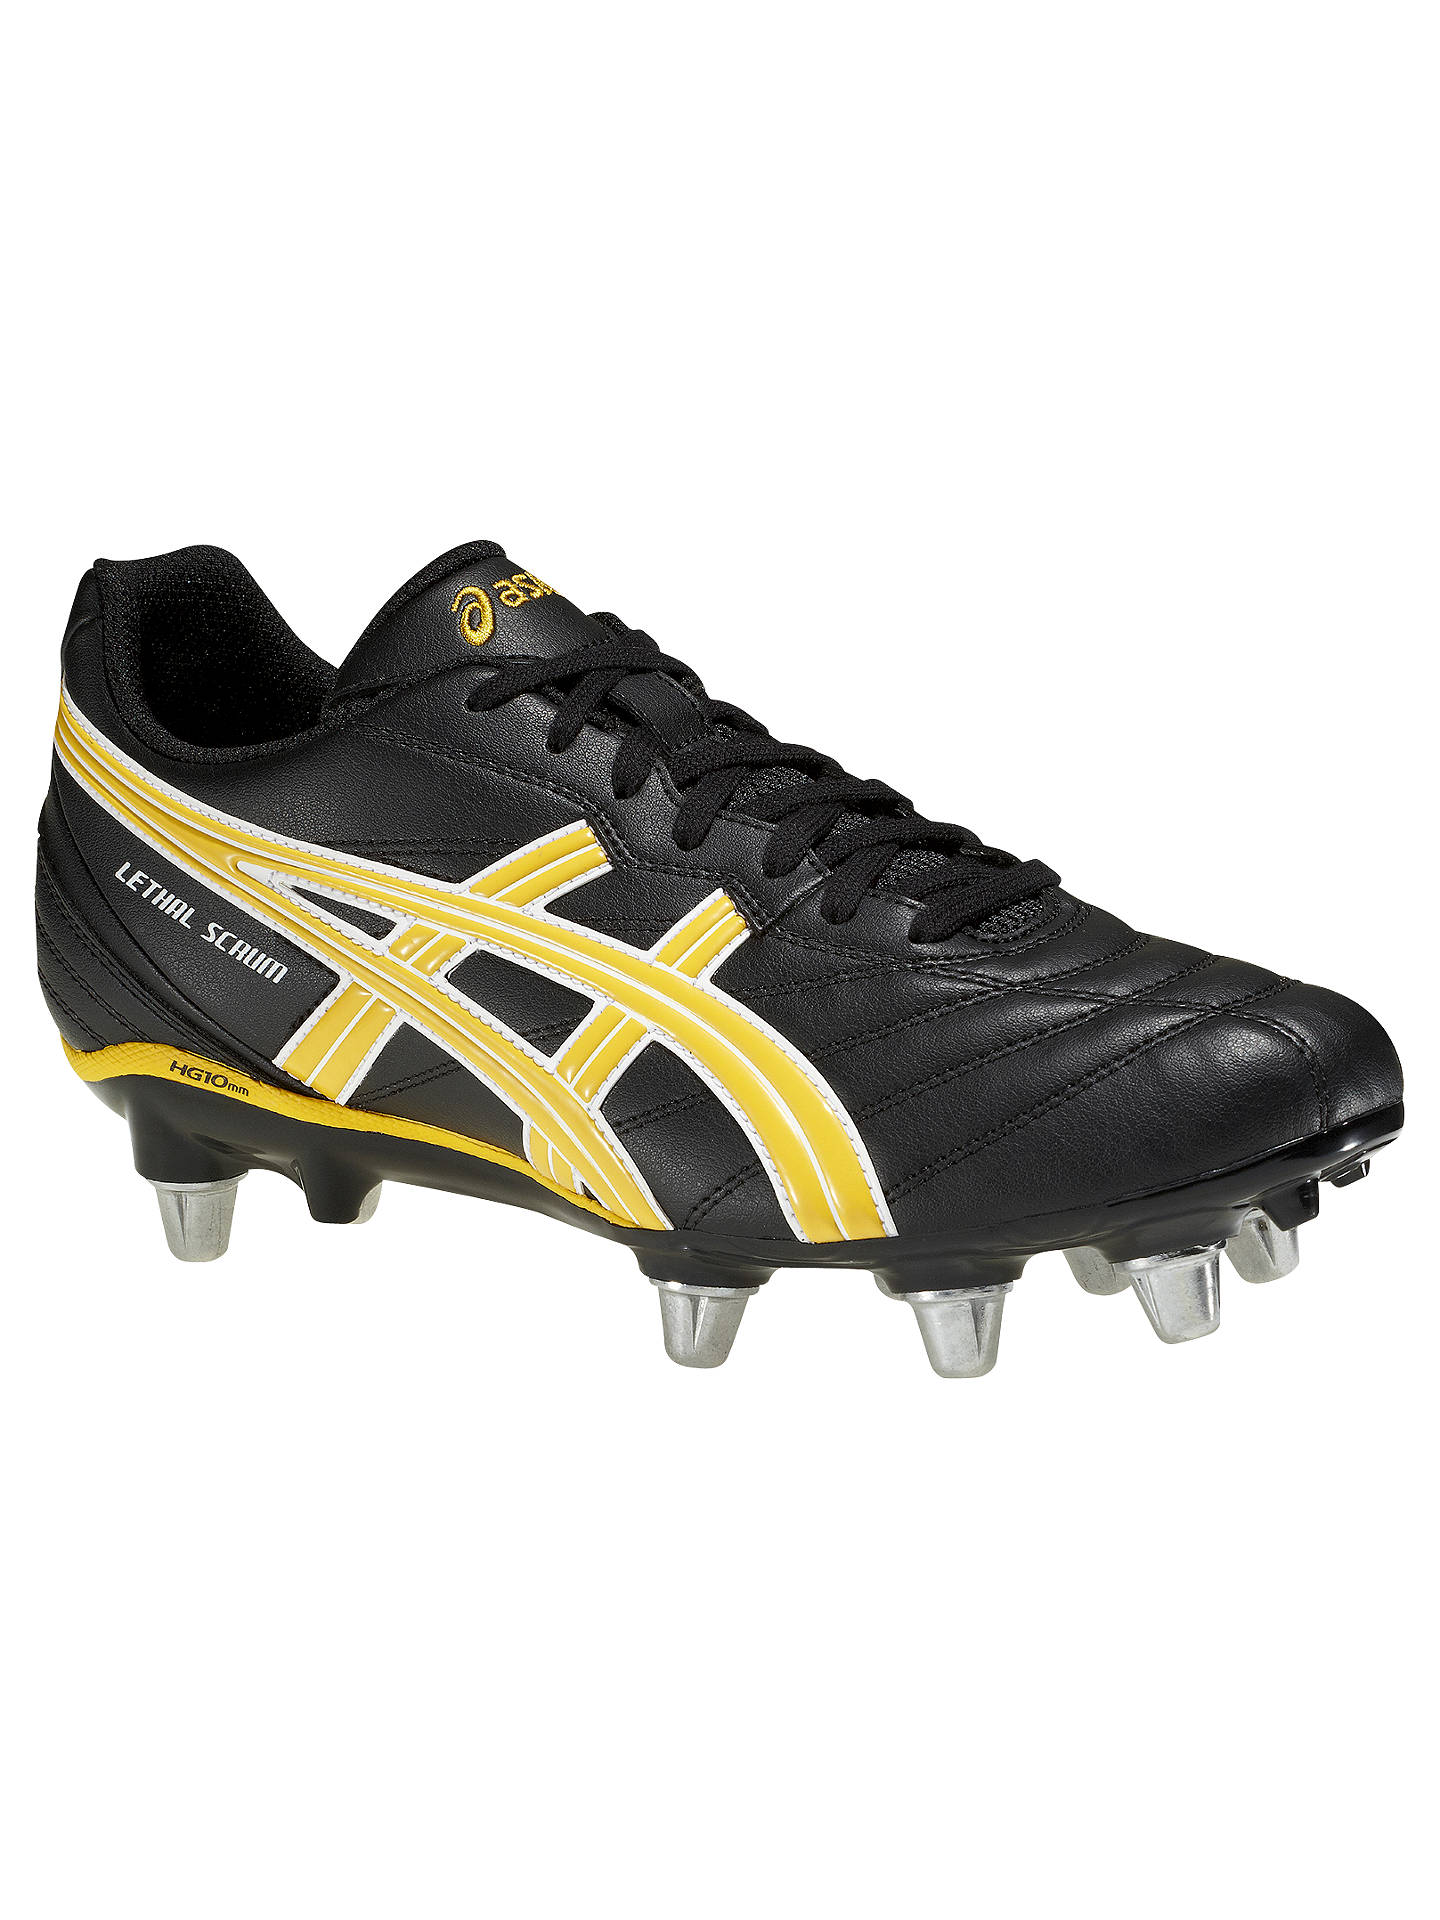 d311de15ad23fa Buy Asics Lethal Scrum Men's Rugby Boots, Black/Yellow, 9 Online at  johnlewis ...